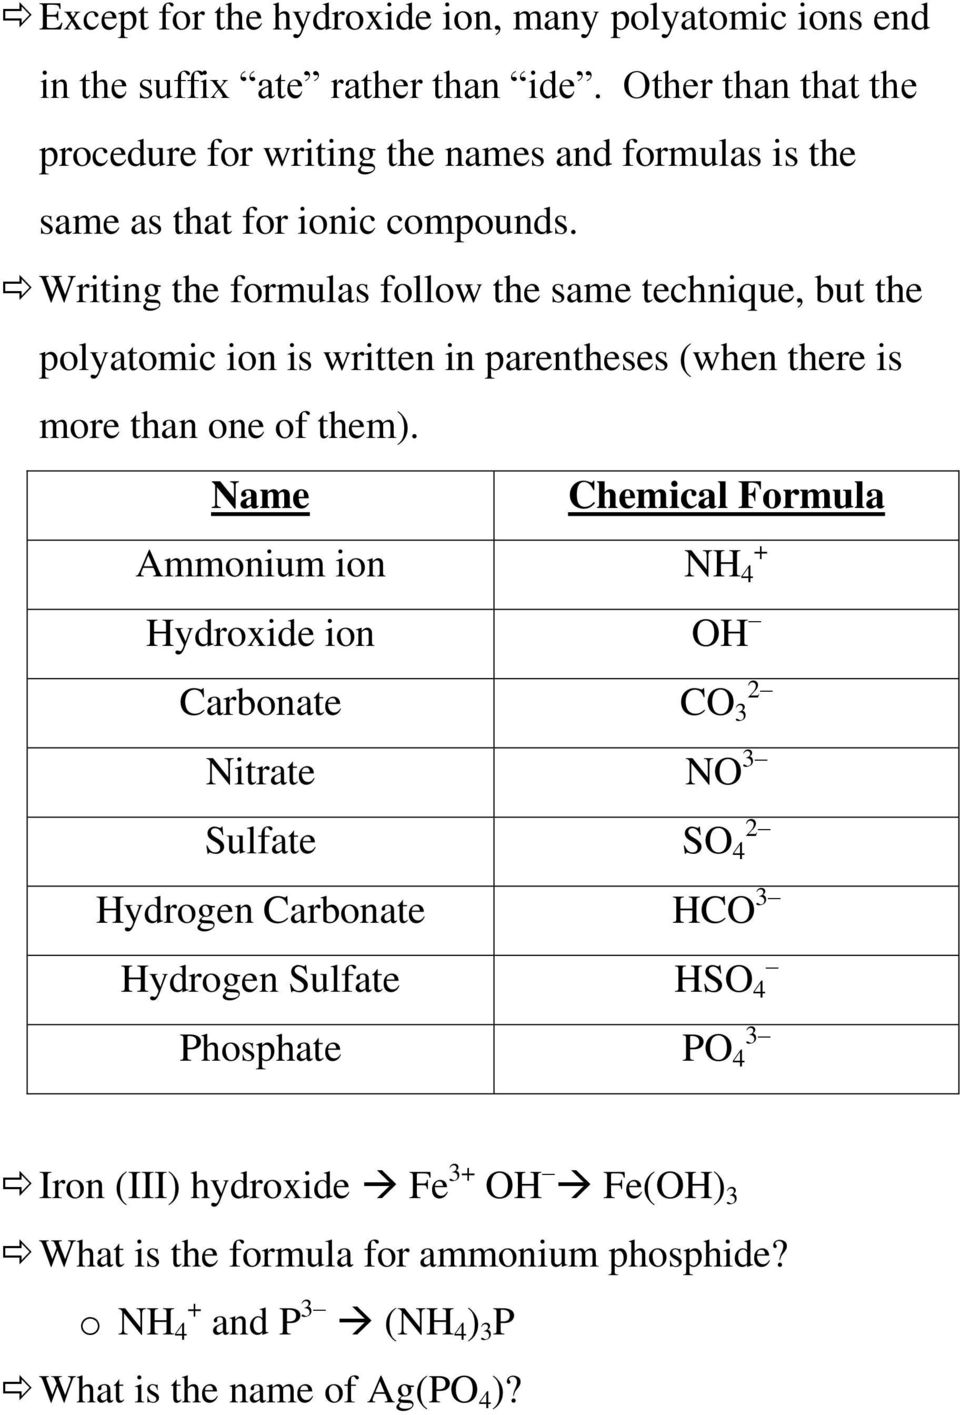 Writing the formulas follow the same technique, but the polyatomic ion is written in parentheses (when there is more than one of them).